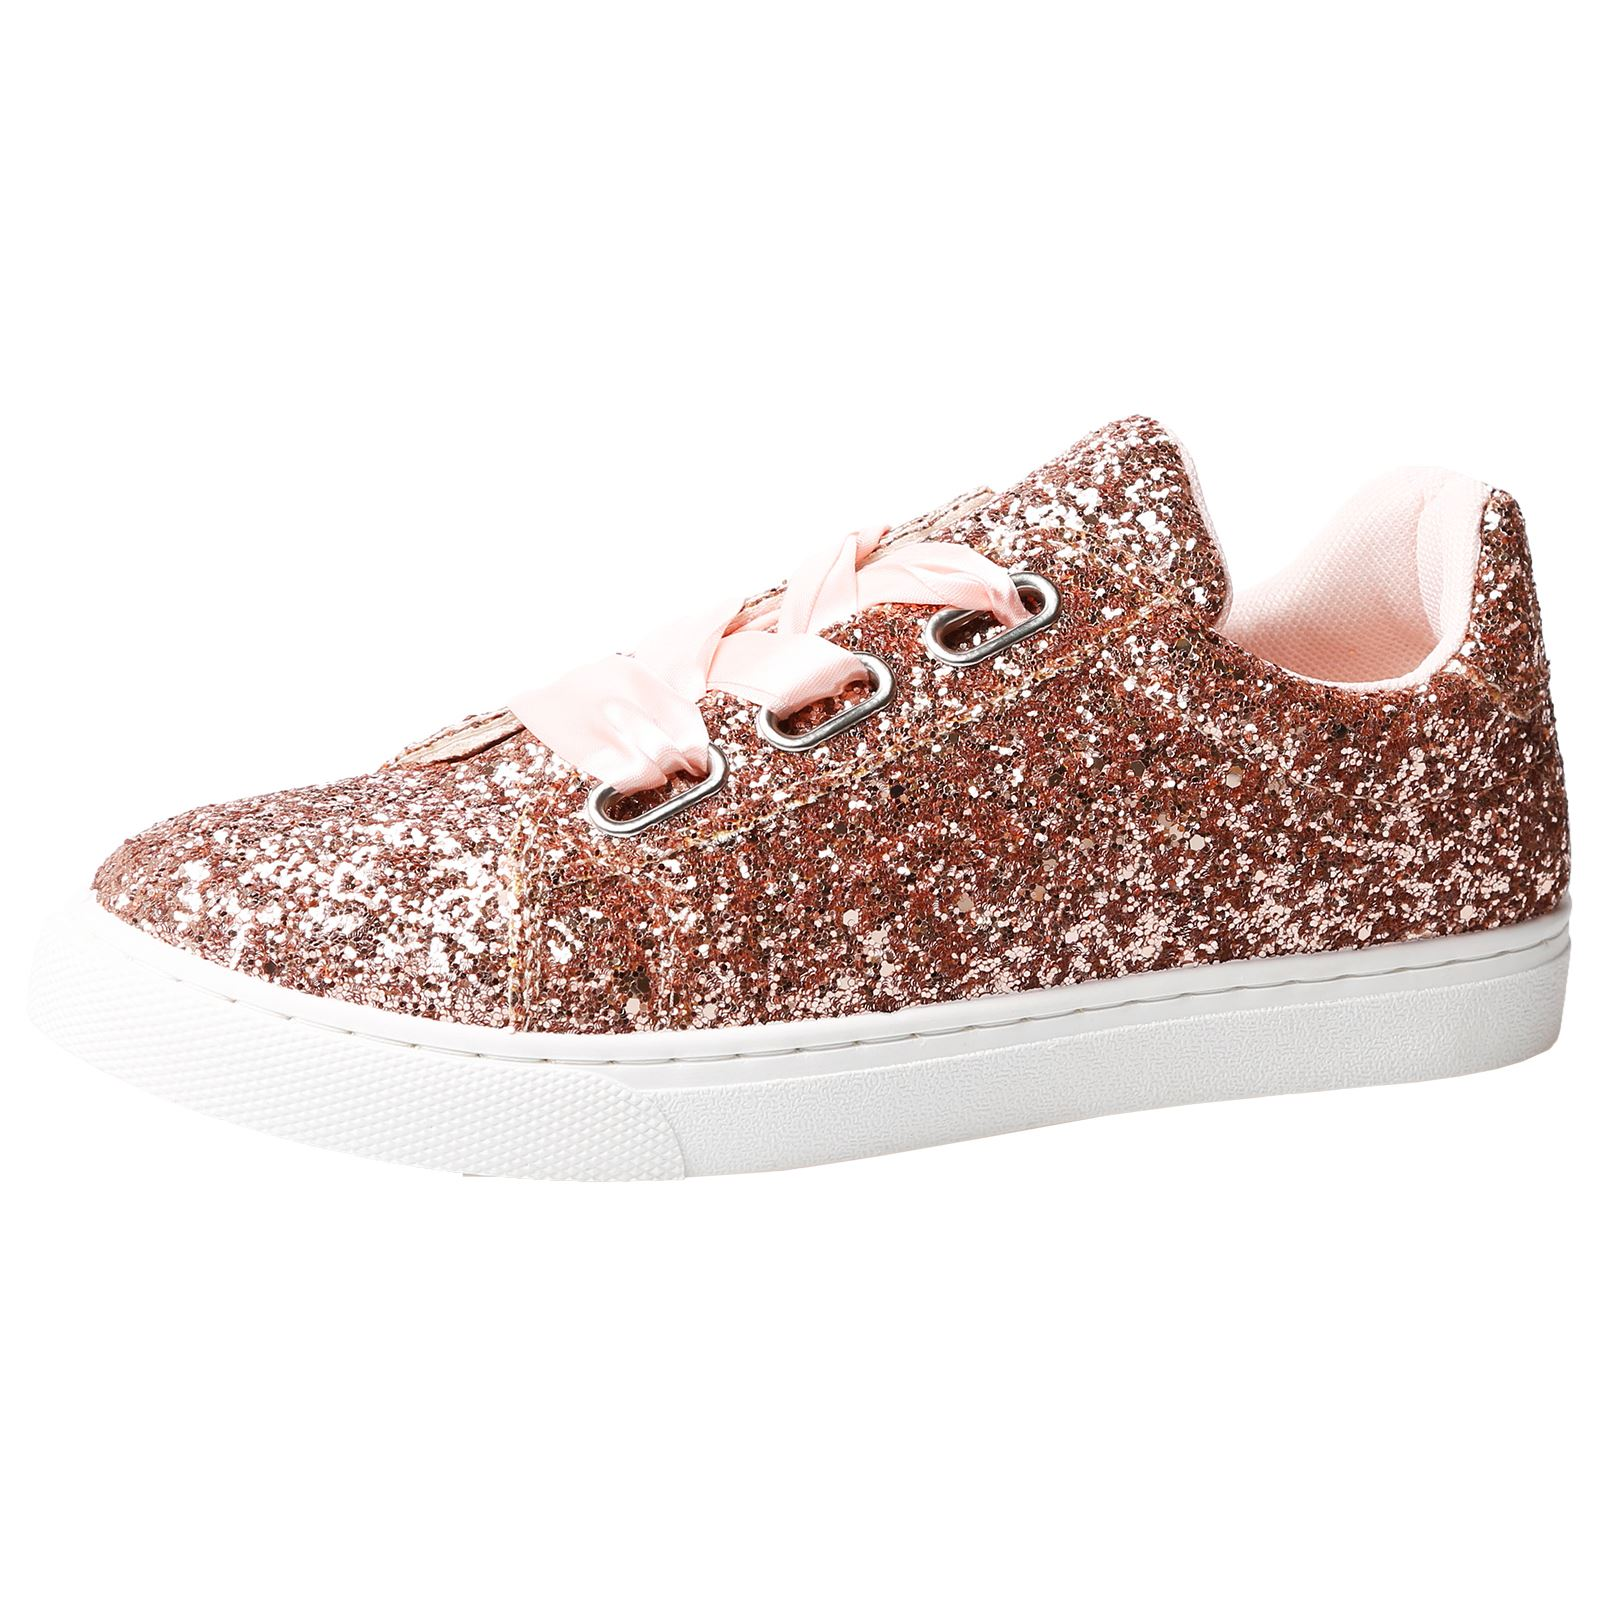 Silver Women's Shoes: erawtoir.ga - Your Online Women's Shoes Store! Get 5% in rewards with Club O! Coupon Activated! Skip to main content FREE Shipping & Easy Returns* Search. Earn Rewards with Overstock. Xehar Womens Sparkle Glitter Stylish Fashion Sneakers. 1 Review.